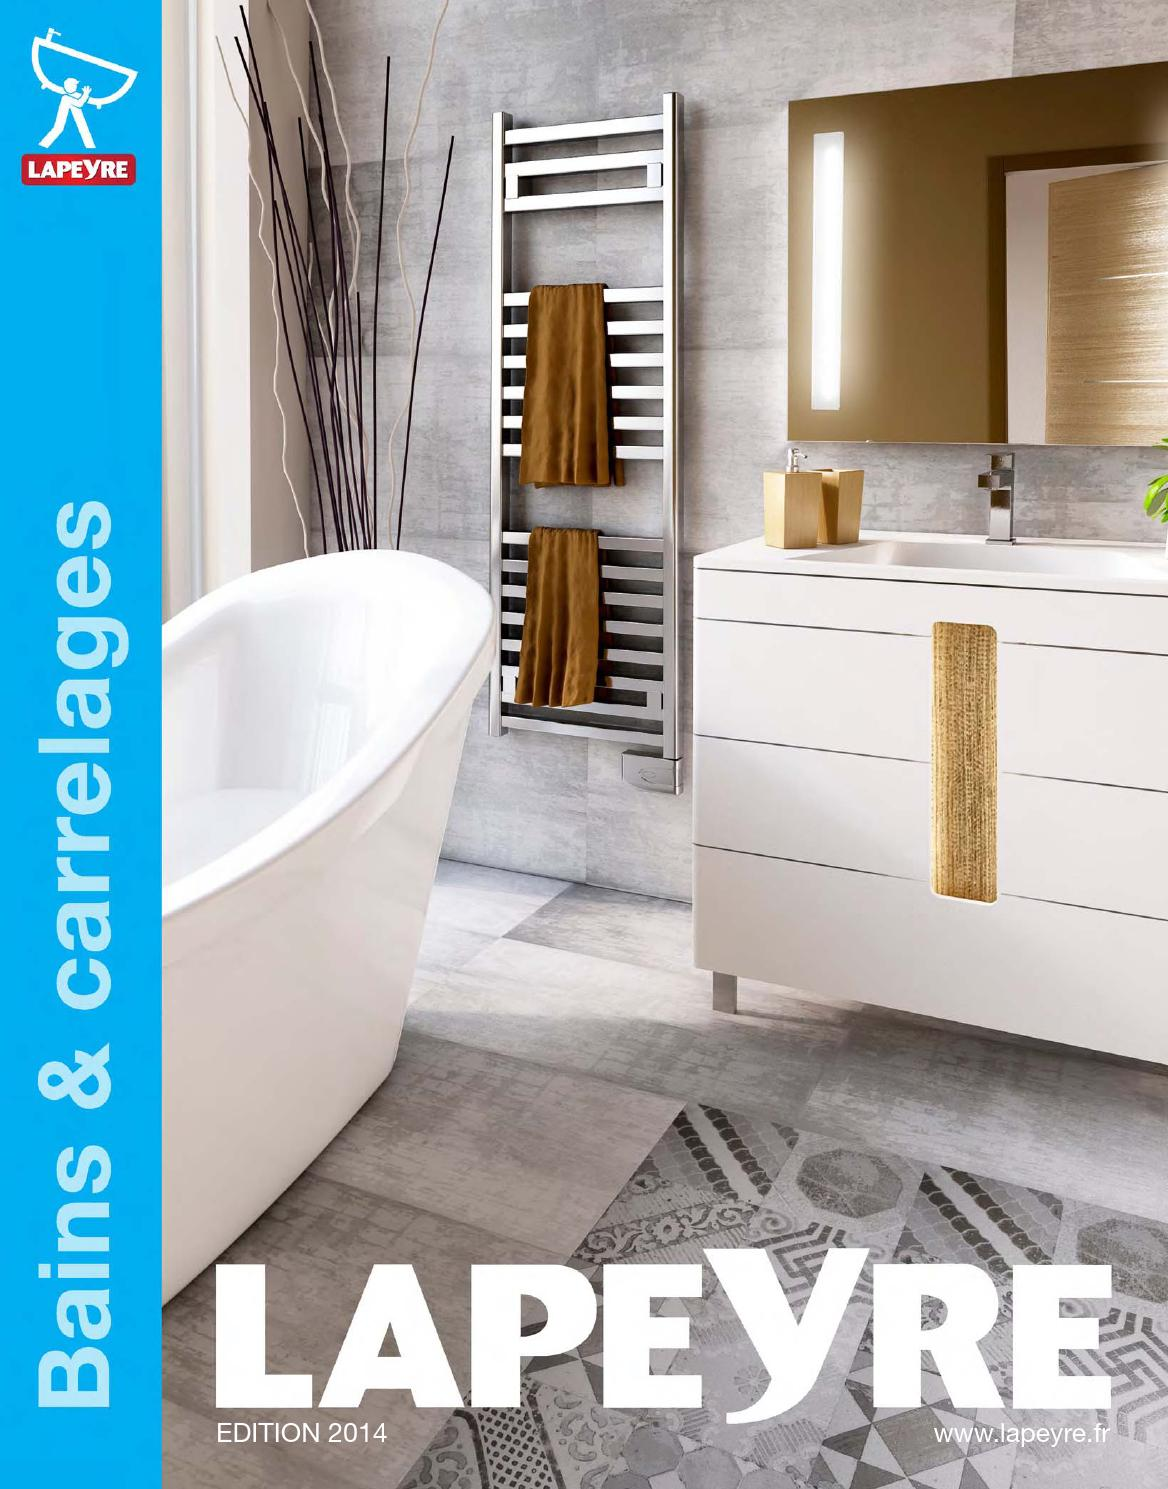 Catalogue Lapeyre - Bains & Carrelages 16 by joe monroe - issuu